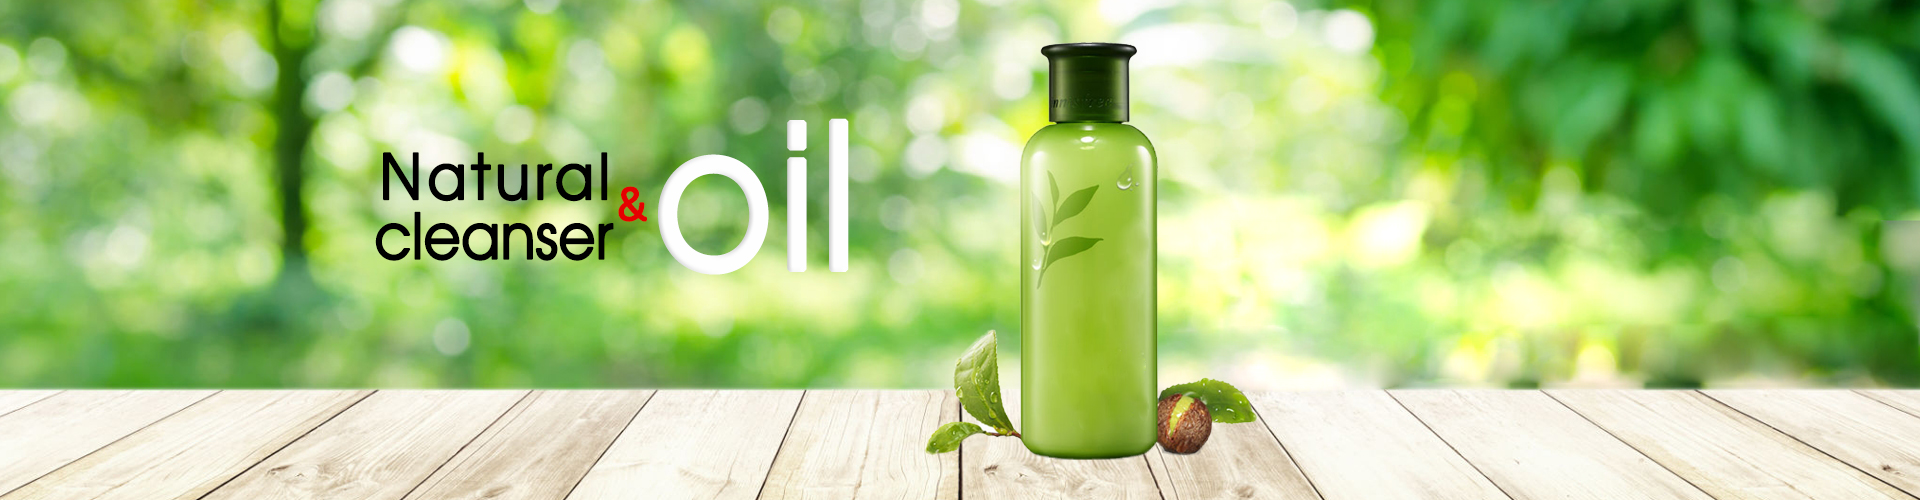 Natural cleanser & Oil